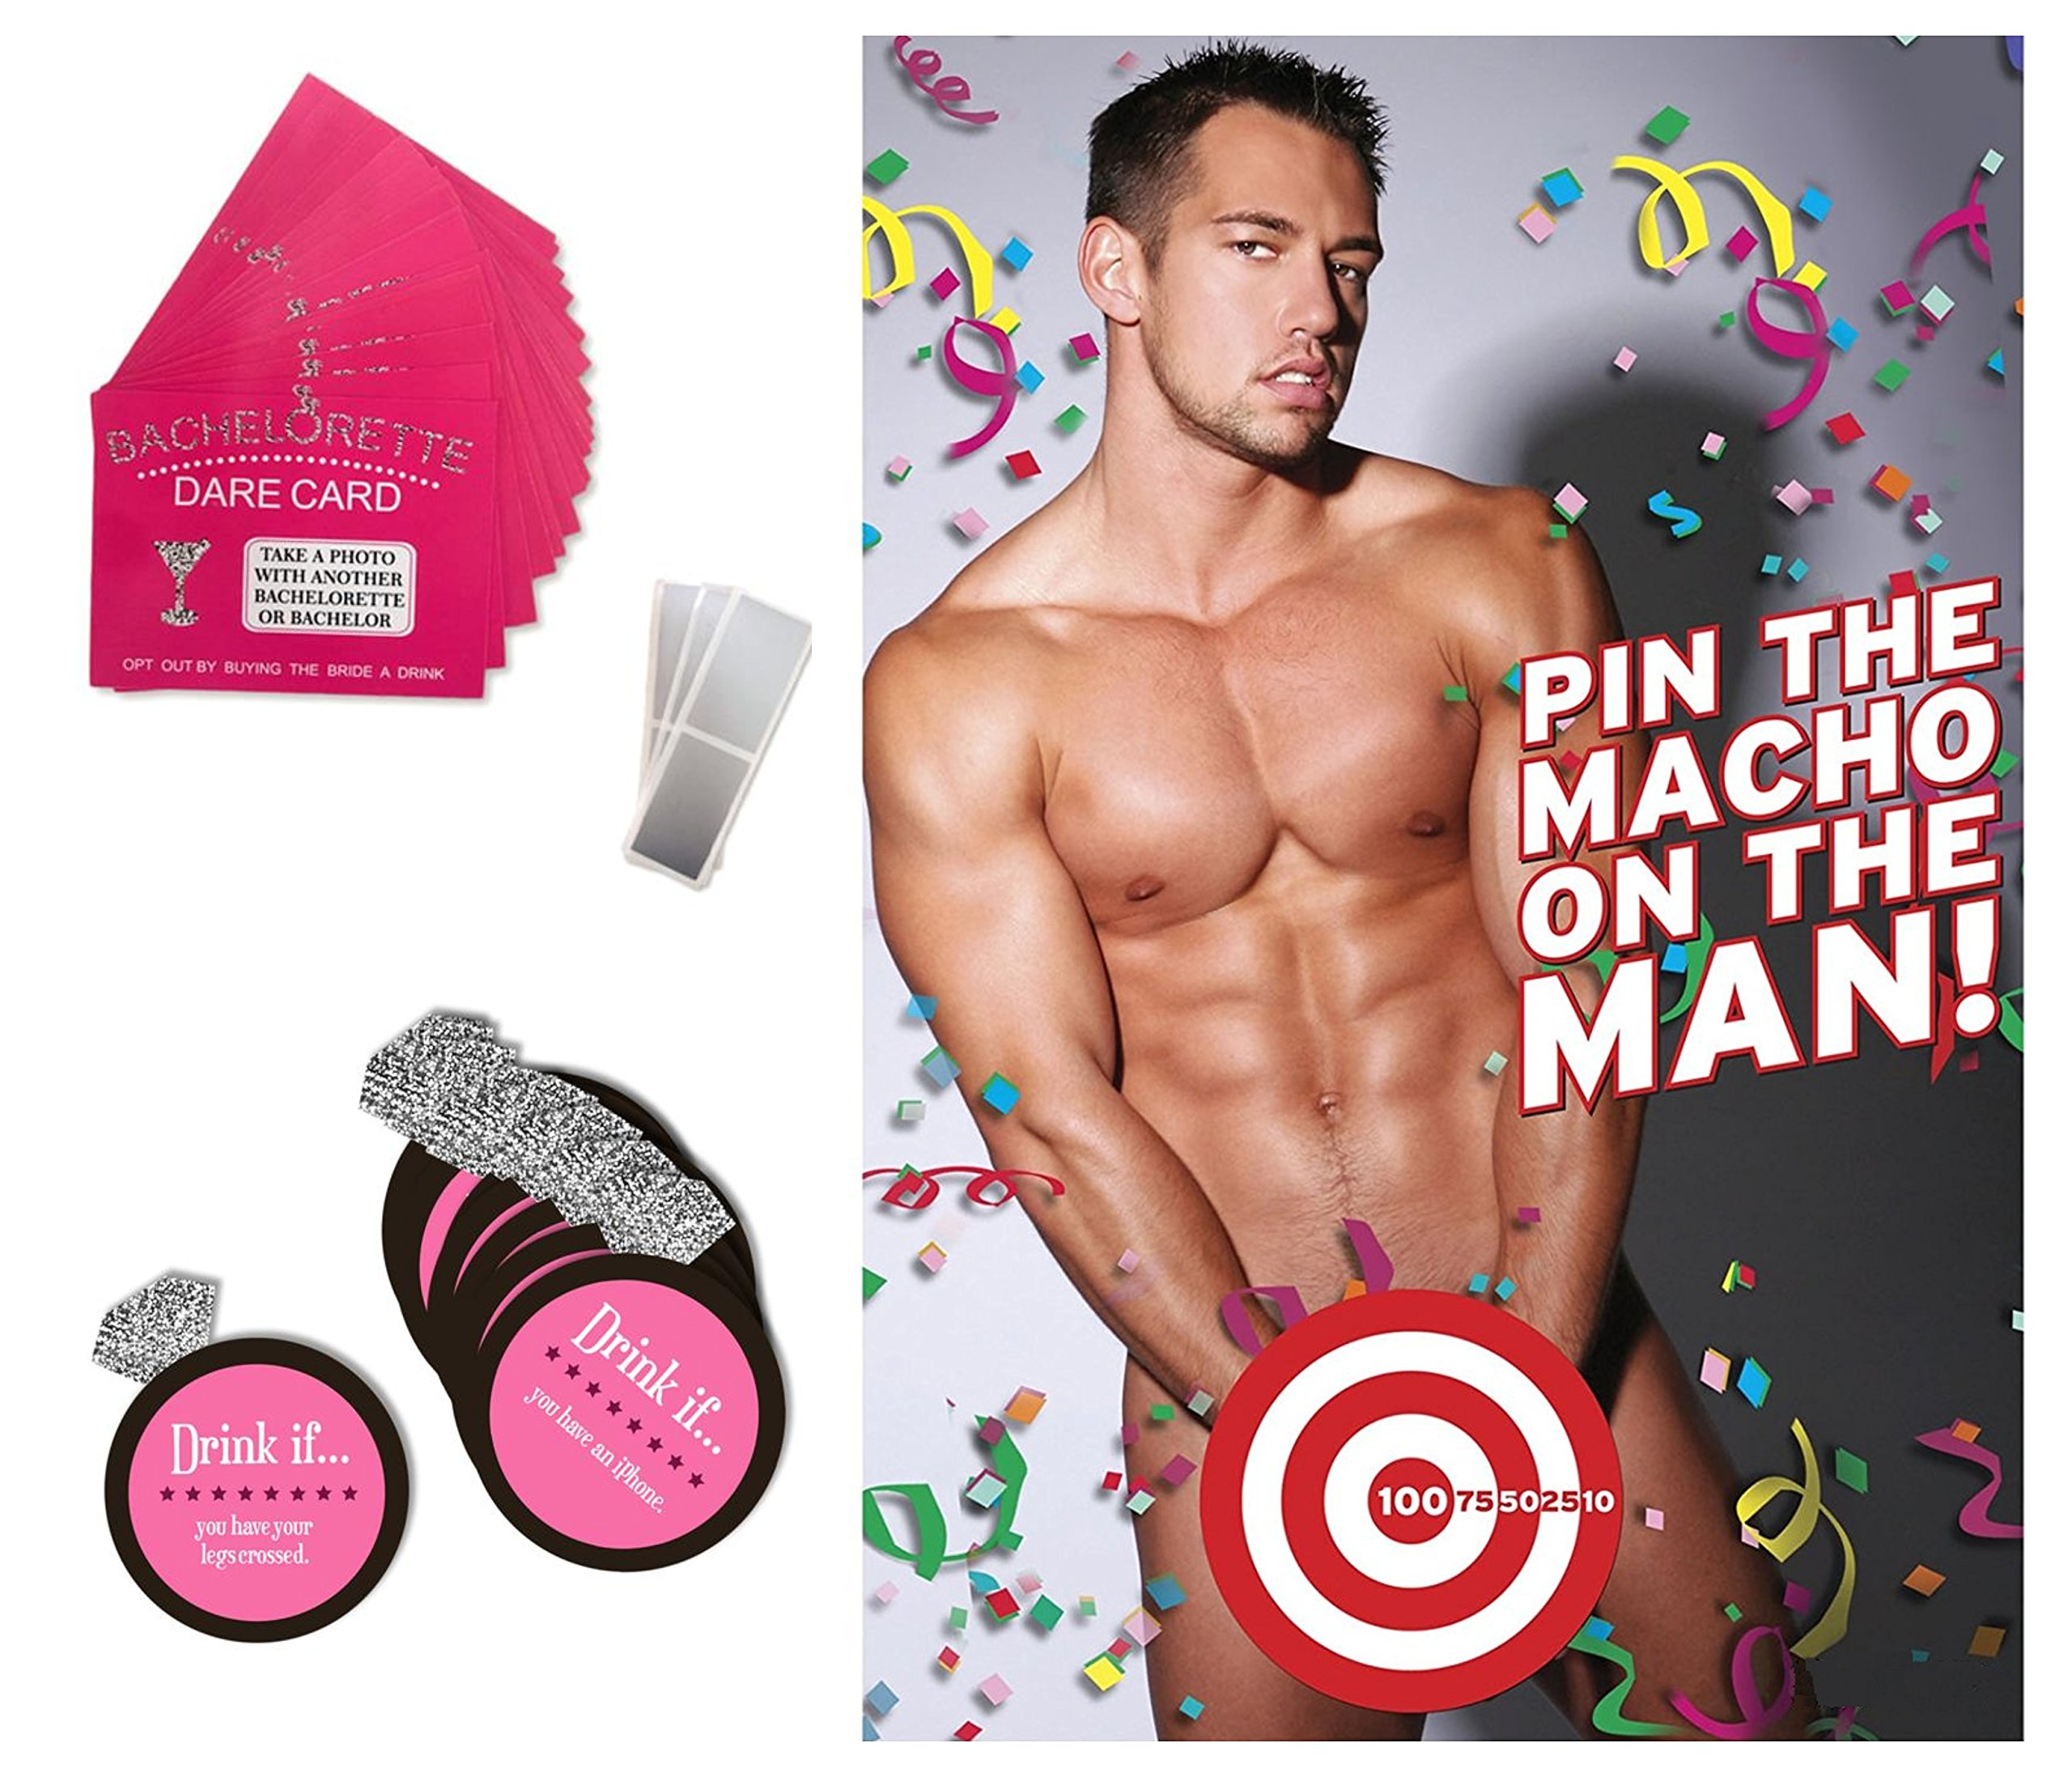 Bachelorette Party Games & Bridal Shower Supplies - 20 Dare Card Game, 30 Drink If Cards, Pin the Macho on the Man w/ 24 Machos, Bride Set Gifts, Naughty Lesbian Hen Party Decor Favors ~ By PRIMEasy